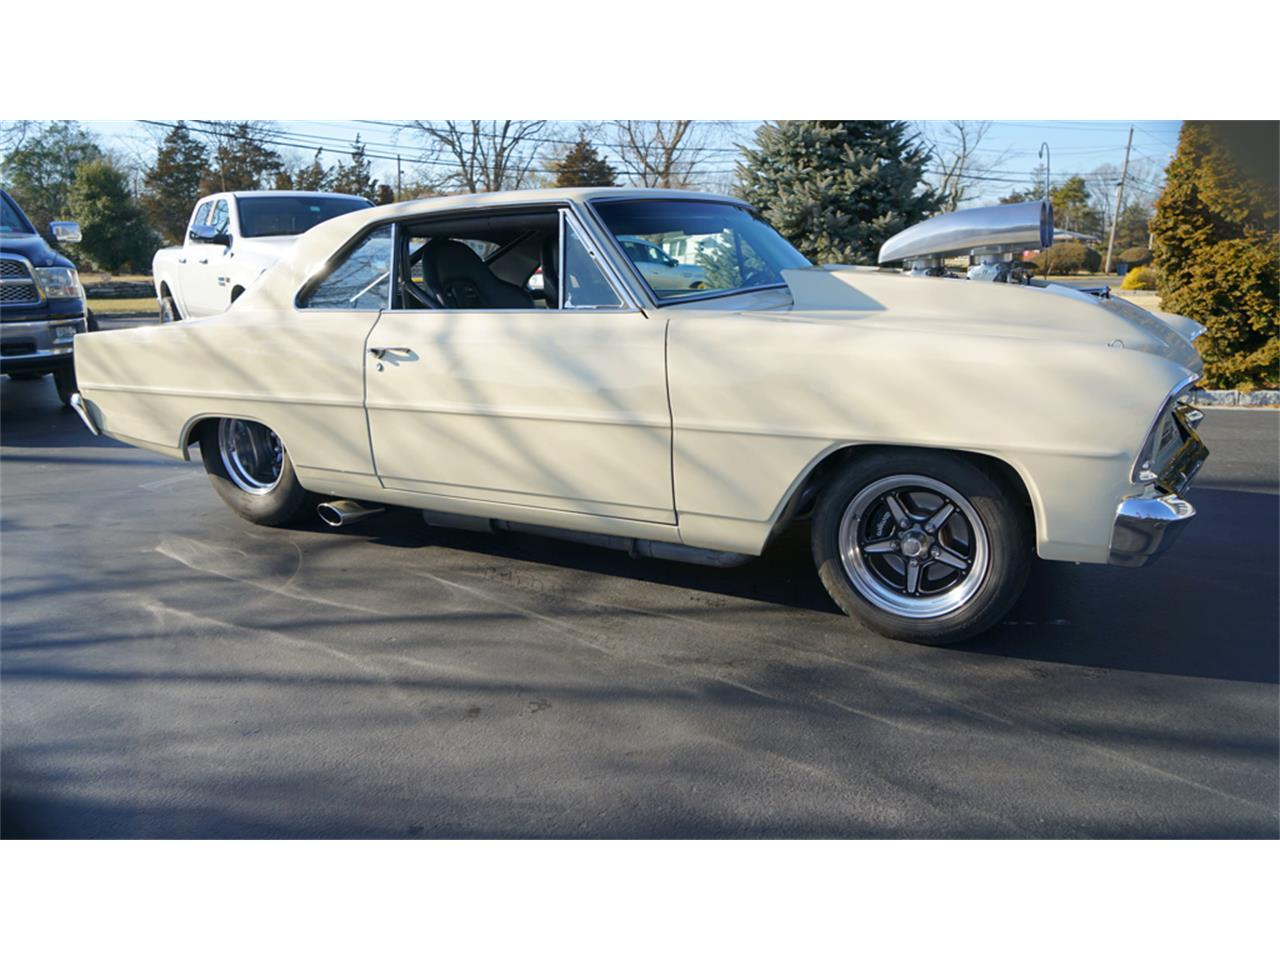 Large Picture of '66 Chevy II Nova located in New York - $57,900.00 - PH1L